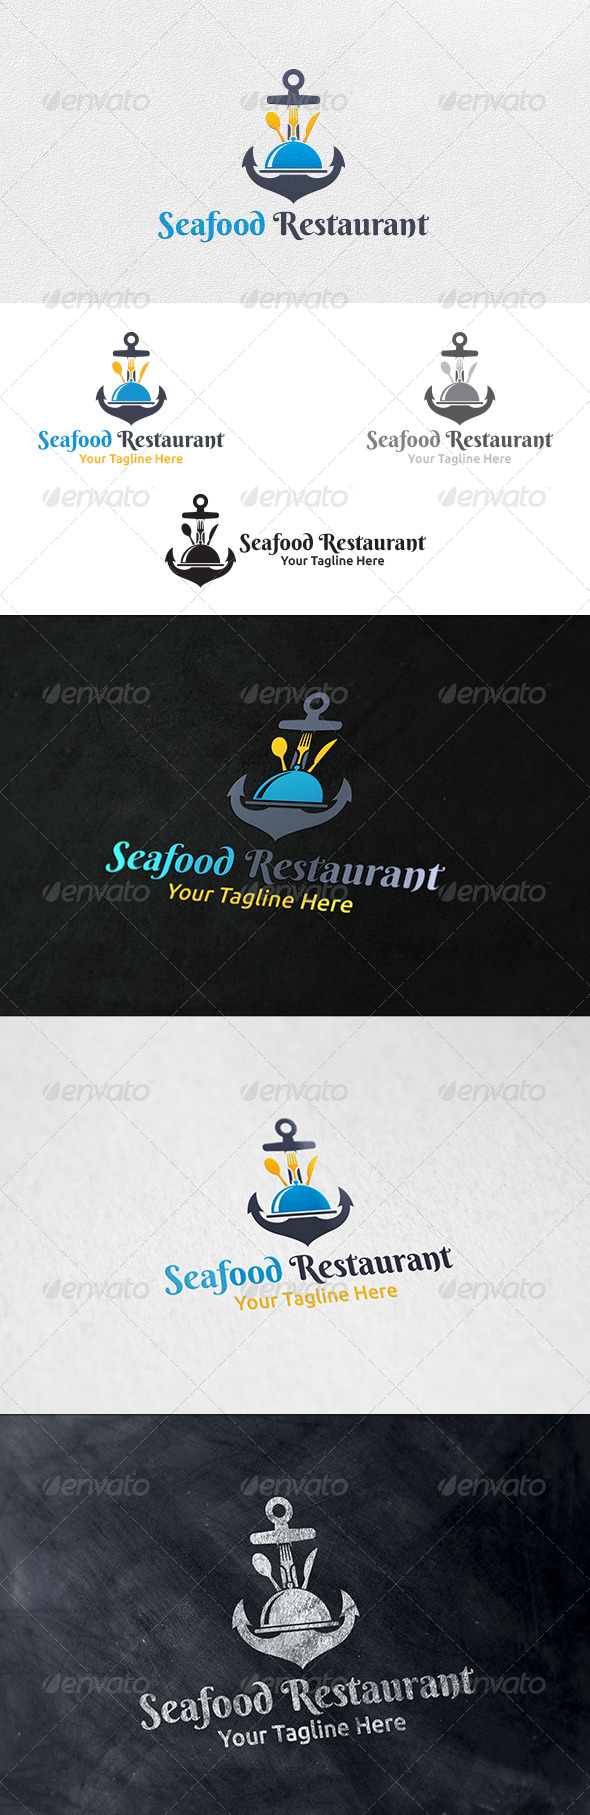 GraphicRiver Seafood Restaurant Logo Template 6323808